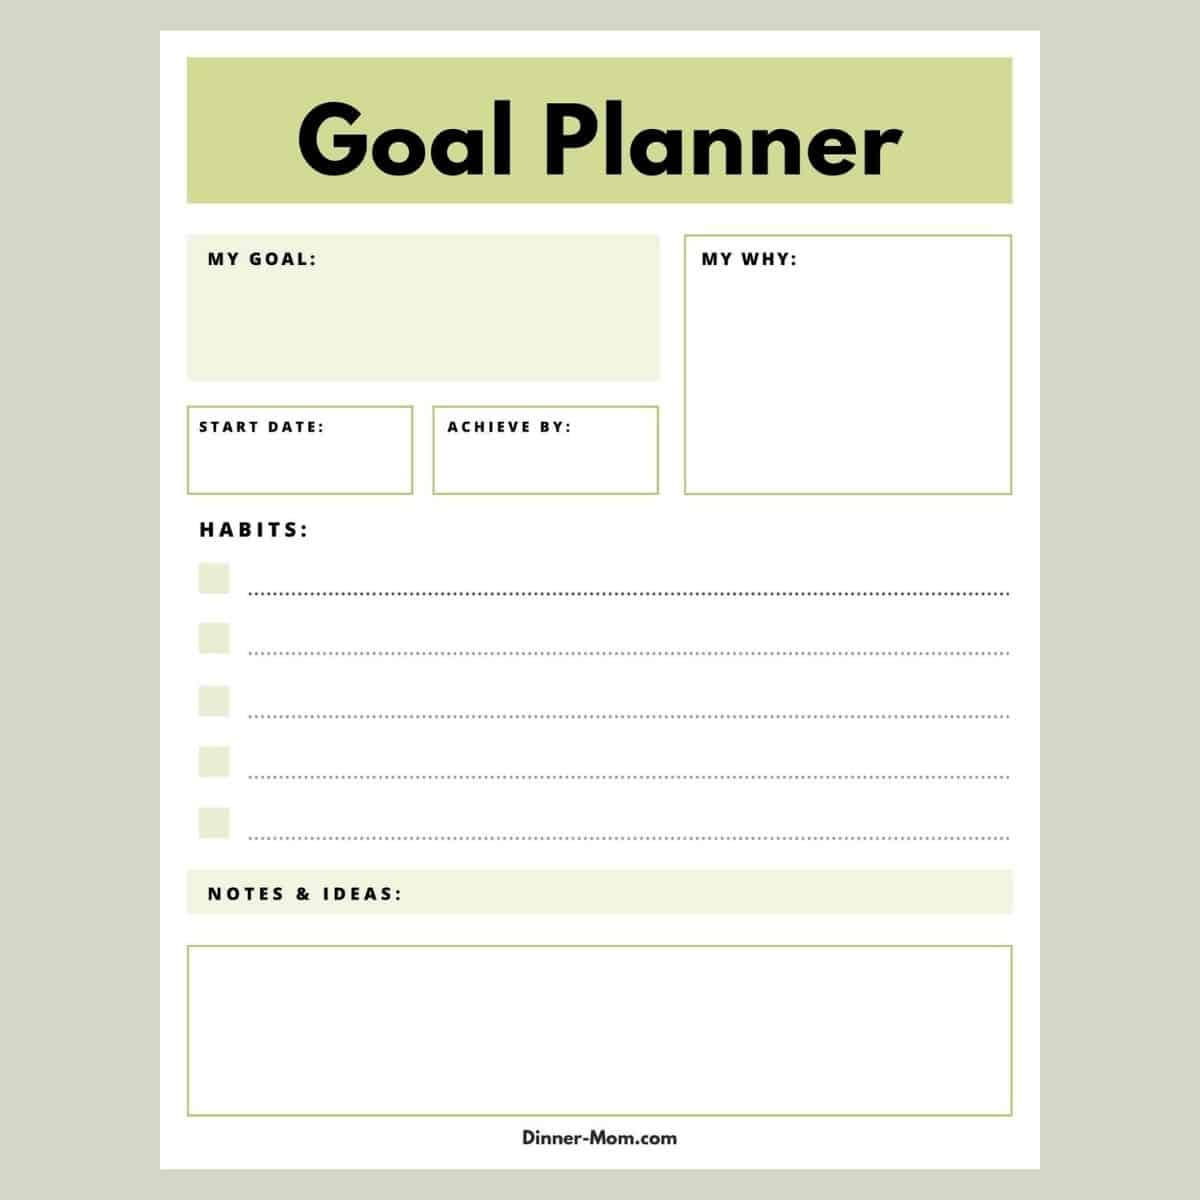 Printable goal planner with spaces for goal, why, dates, habits, notes and ideas.